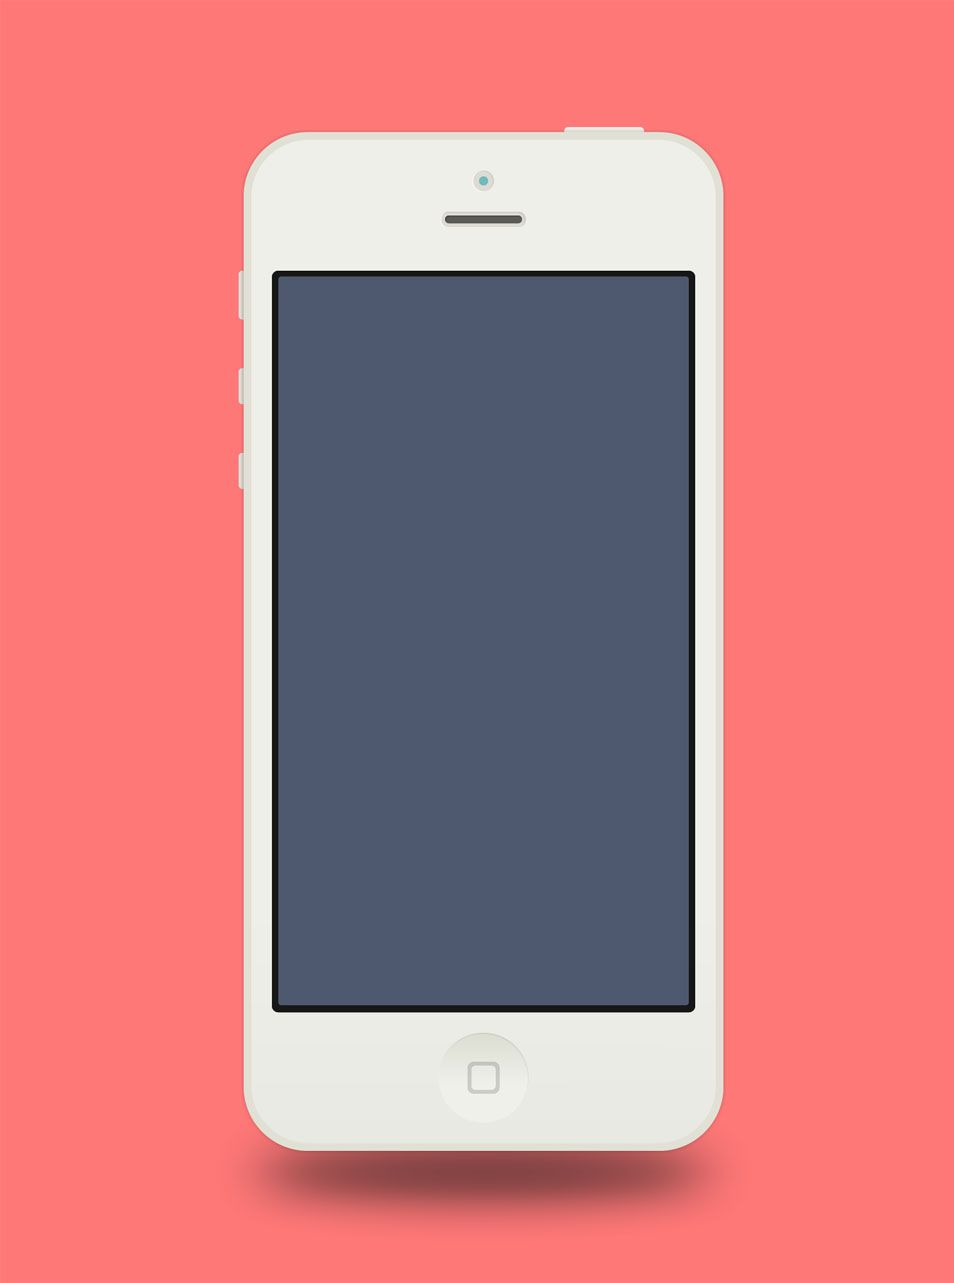 flat iphone 5 adobe fireworks template | make | pinterest | mockup, Presentation templates